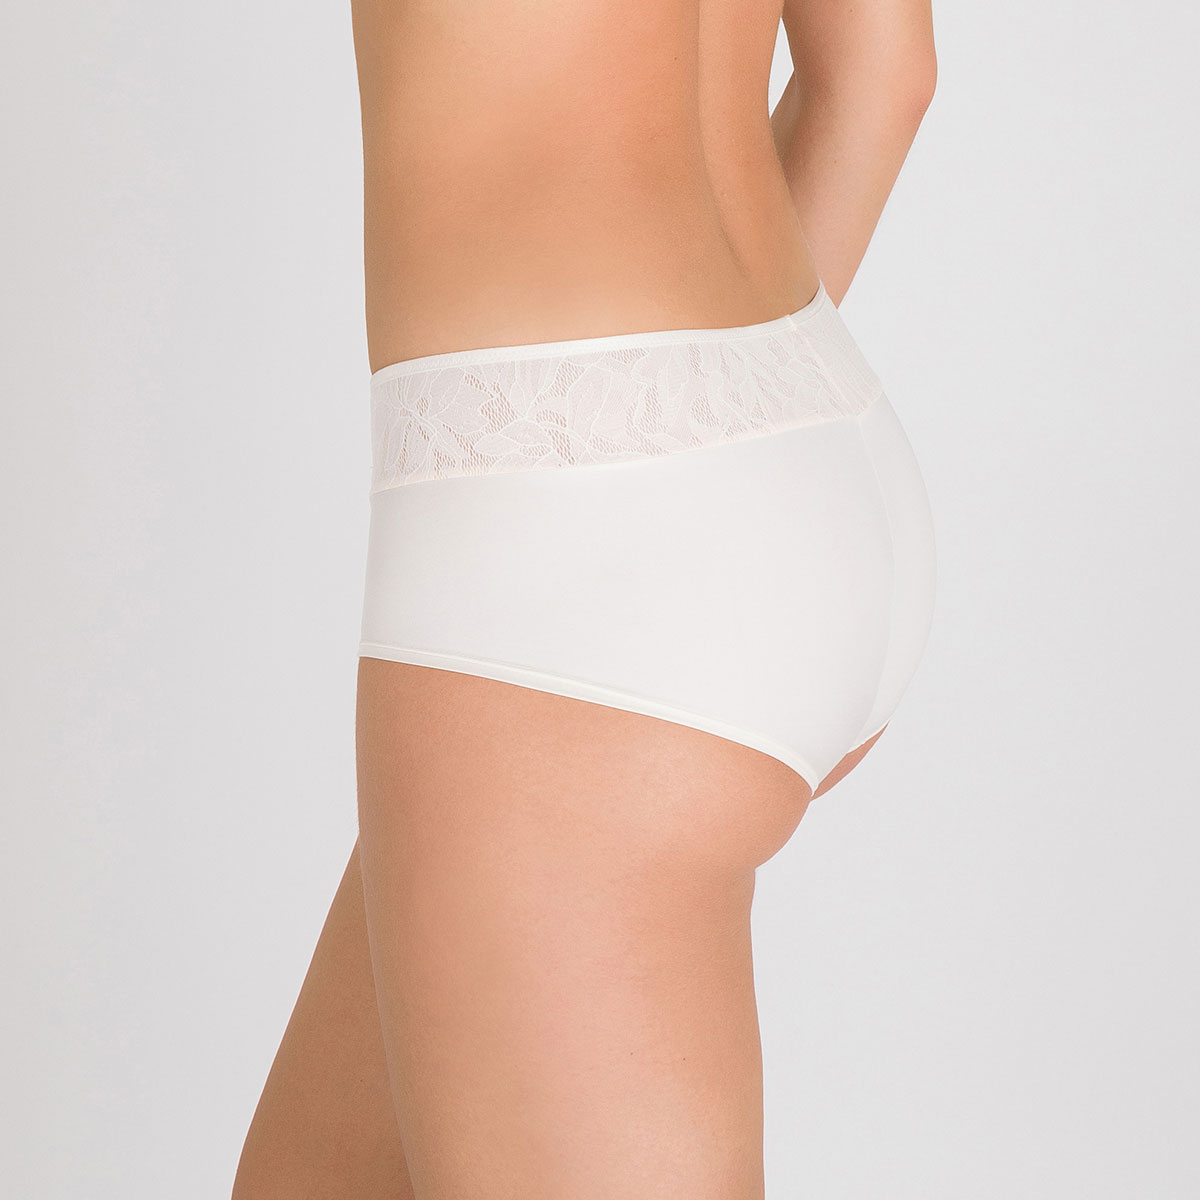 Shorty ivoire - Ideal Beauty Lace-PLAYTEX